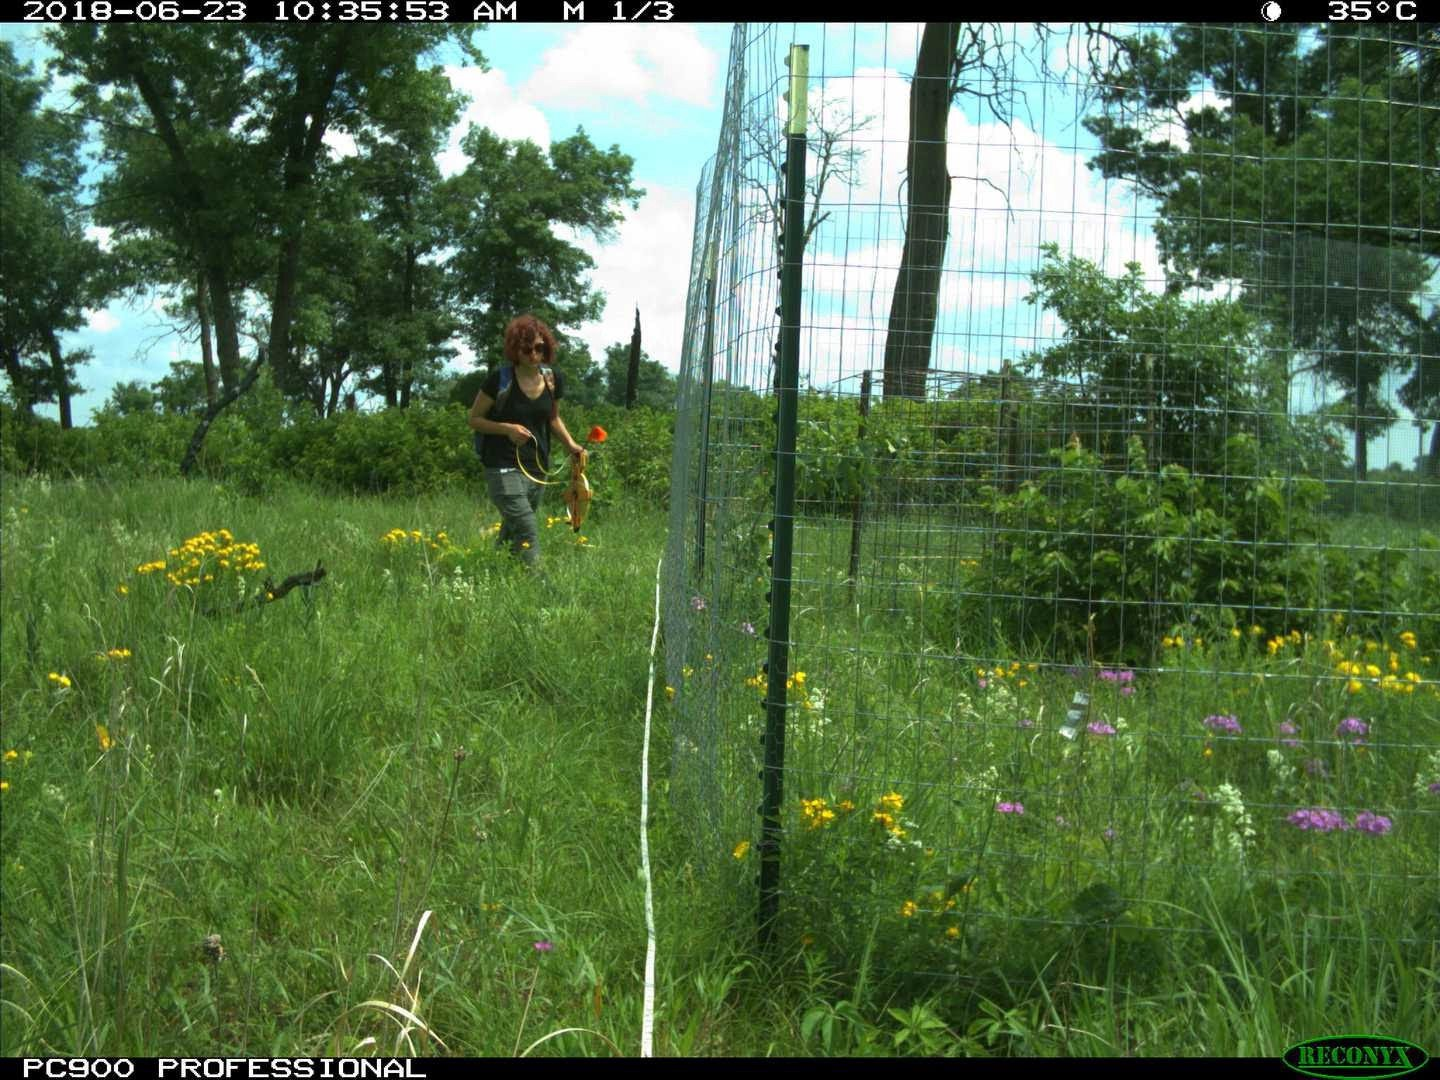 Dr. Meredith Palmer, captured in a human bycatch from a camera trap set in Wisconsin. Image: Dr. Meredith Palmer